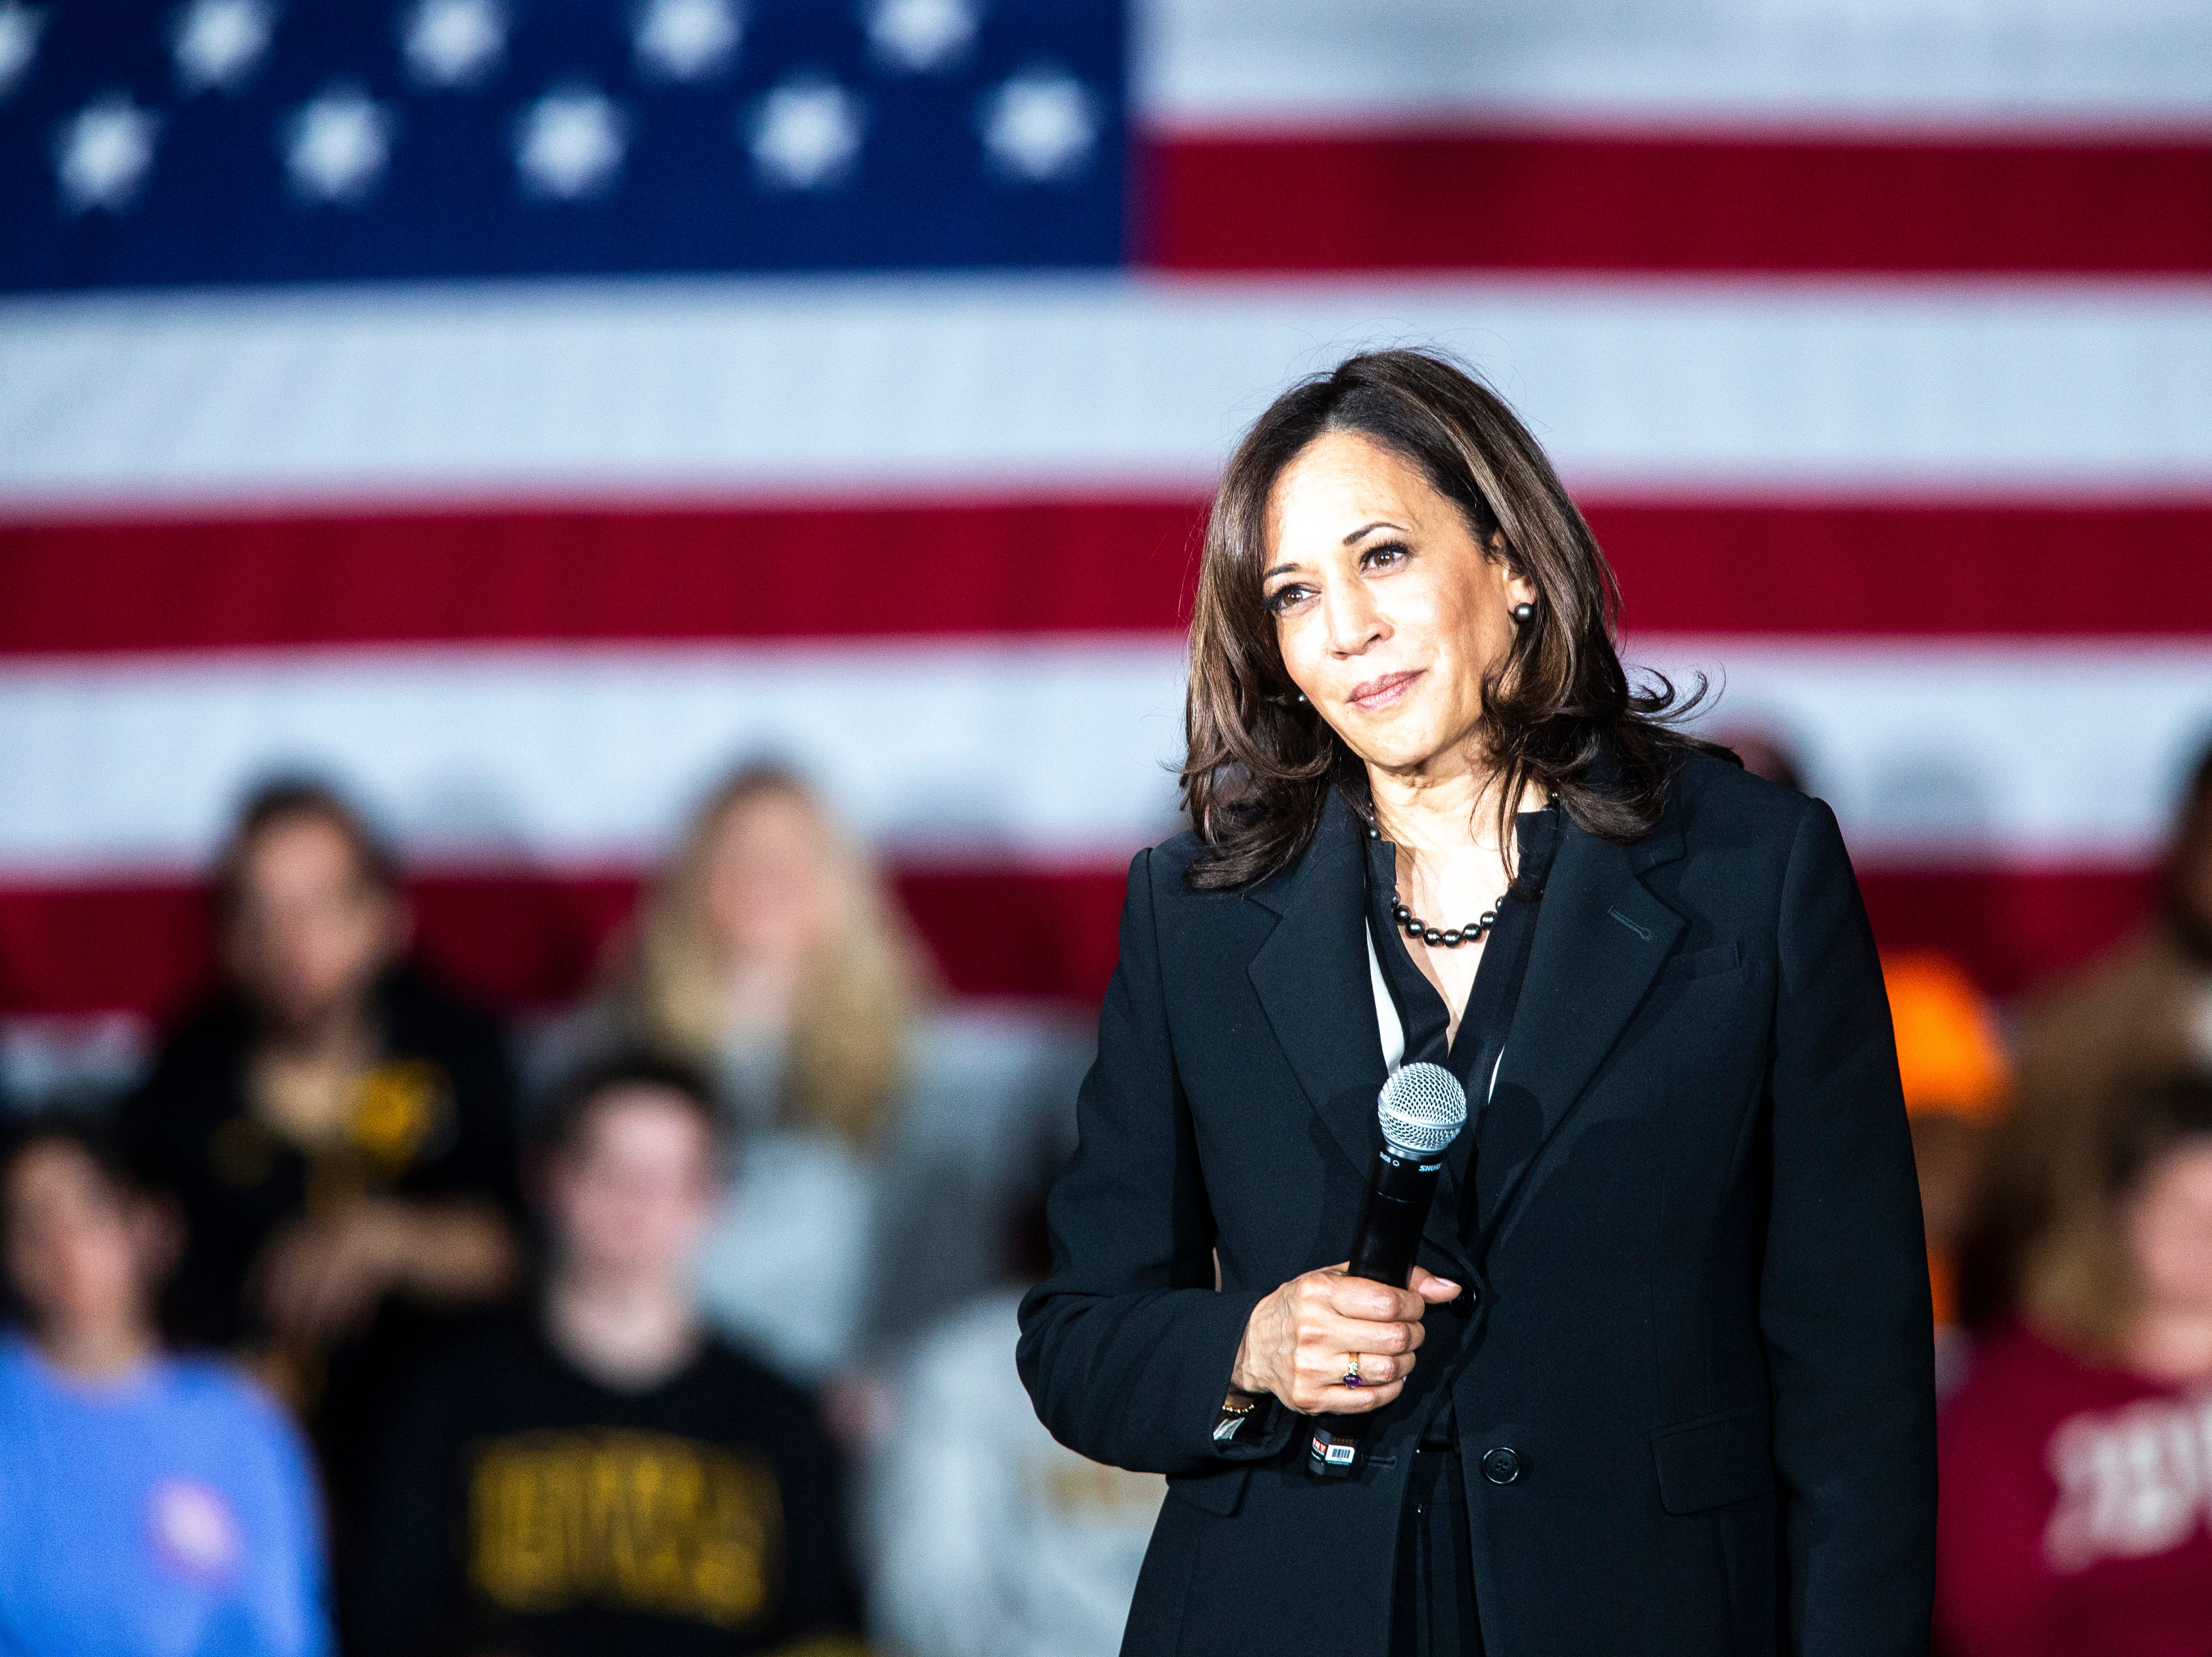 U.S. Sen. Kamala Harris, D-Calif., listens to a question during a town hall event on Wednesday, April 10, 2019, at the Iowa Memorial Union main lounge in Iowa City, Iowa.